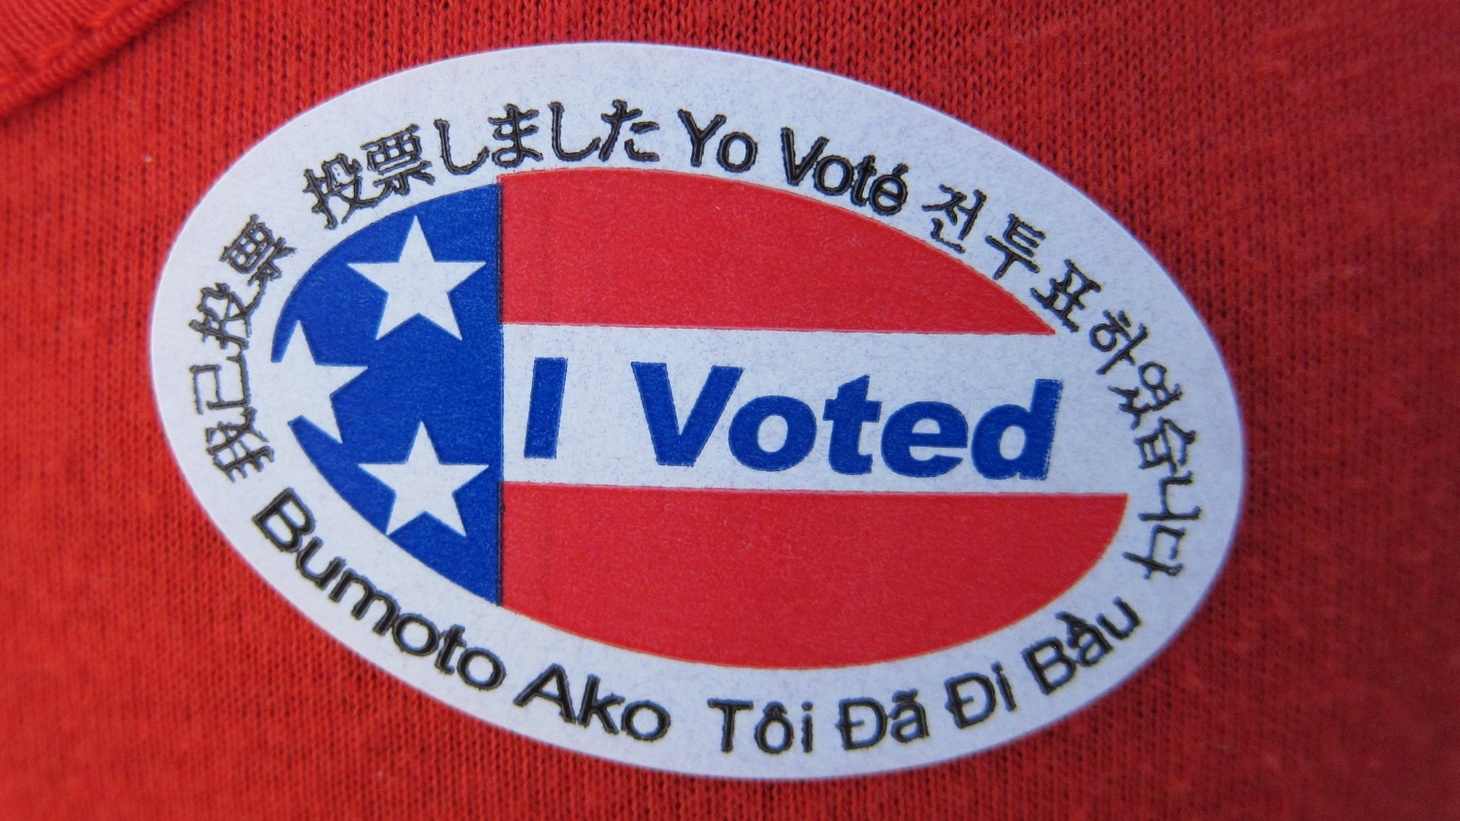 """I voted"" sticker with multiple languages."